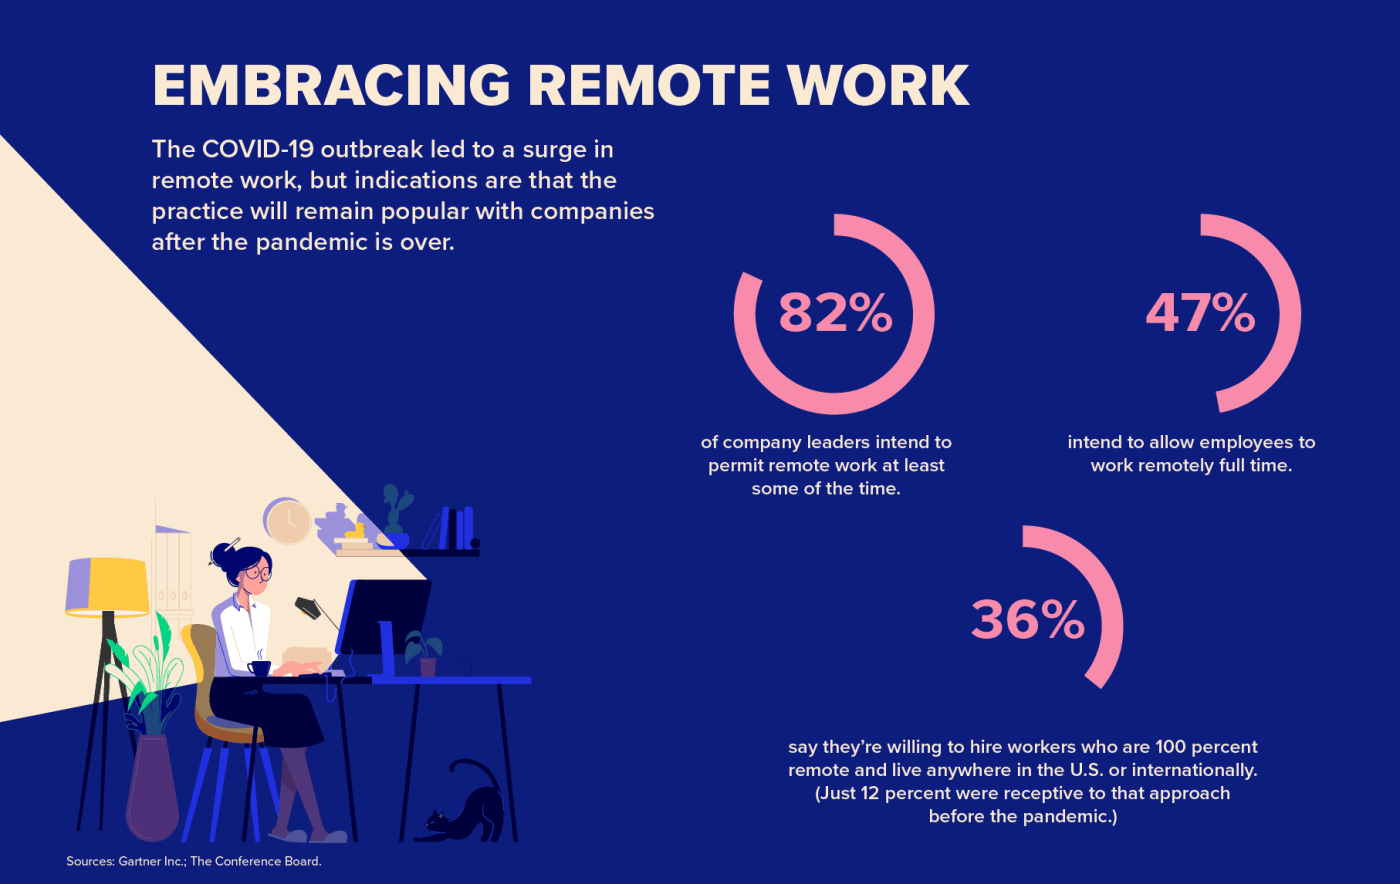 embracing remote work infographic